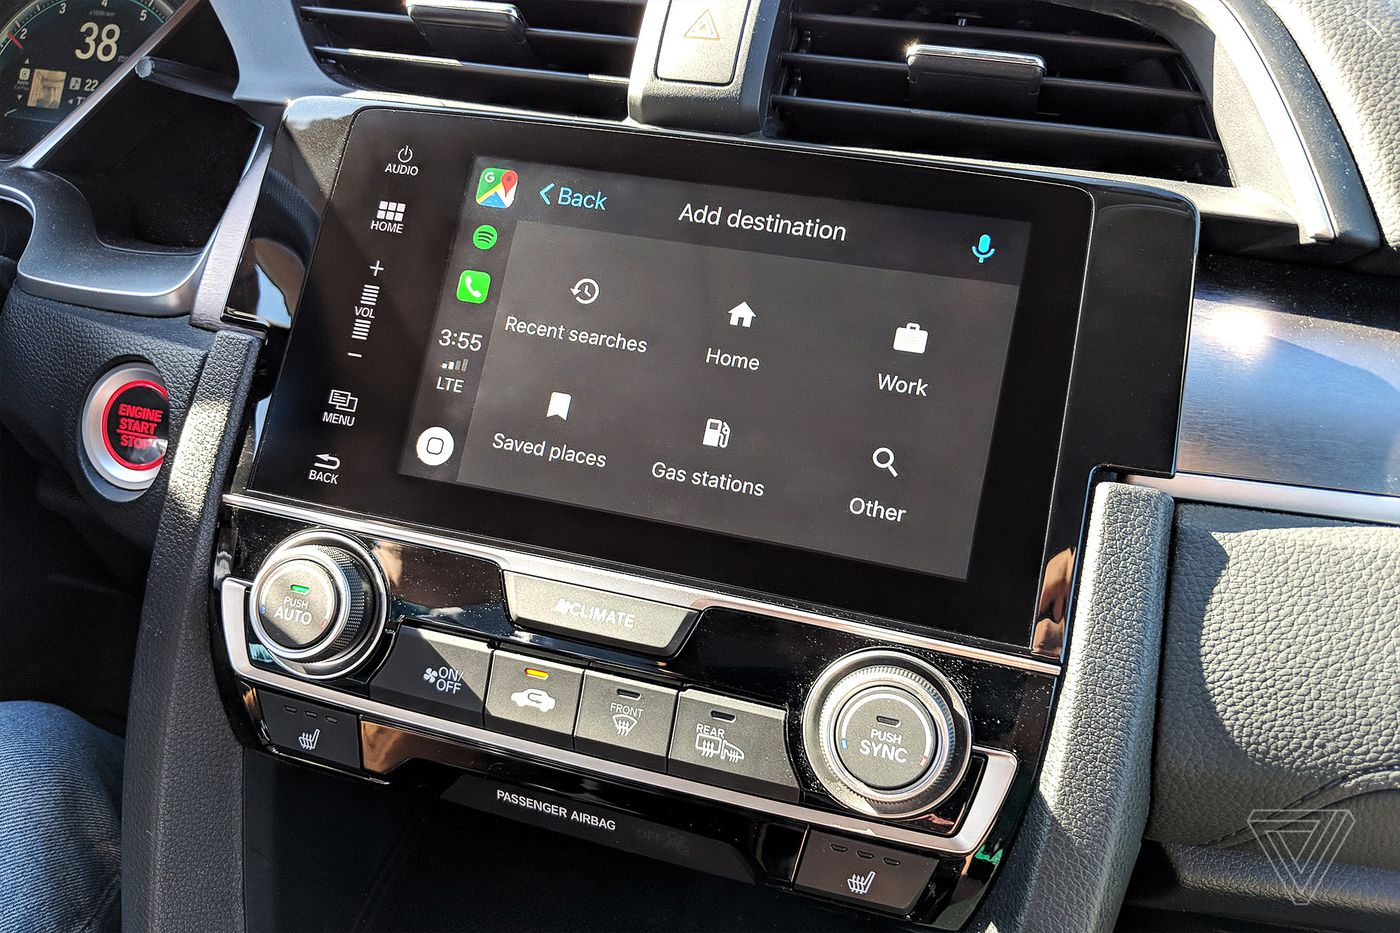 Google Maps and Waze in Apple's CarPlay review: broken dreams - The